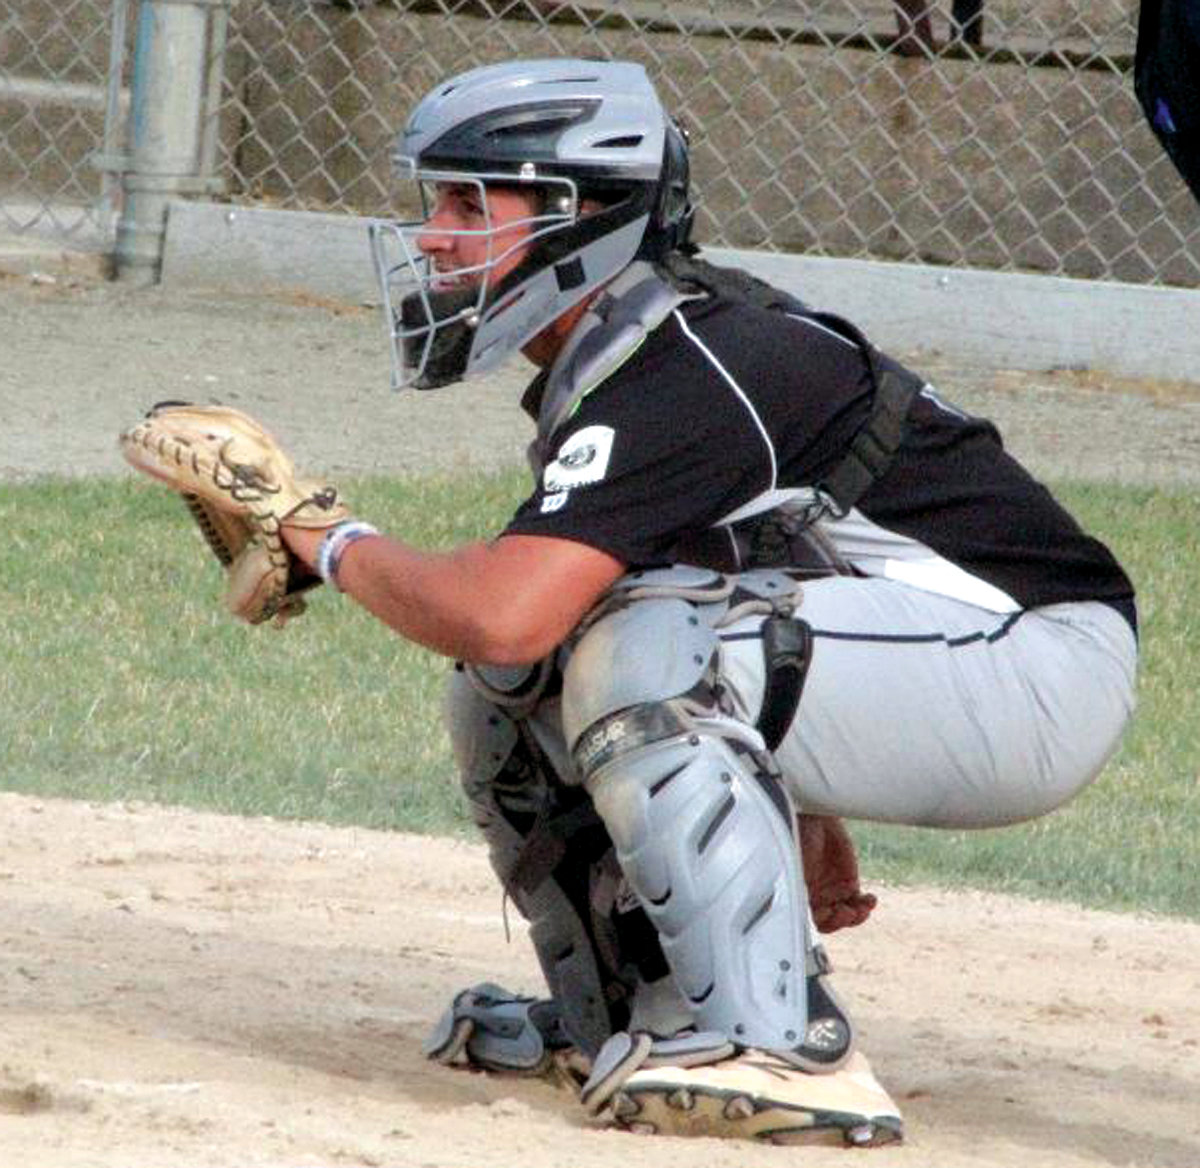 BEHIND THE PLATE: Gershkoff's Thomas Barbieri.